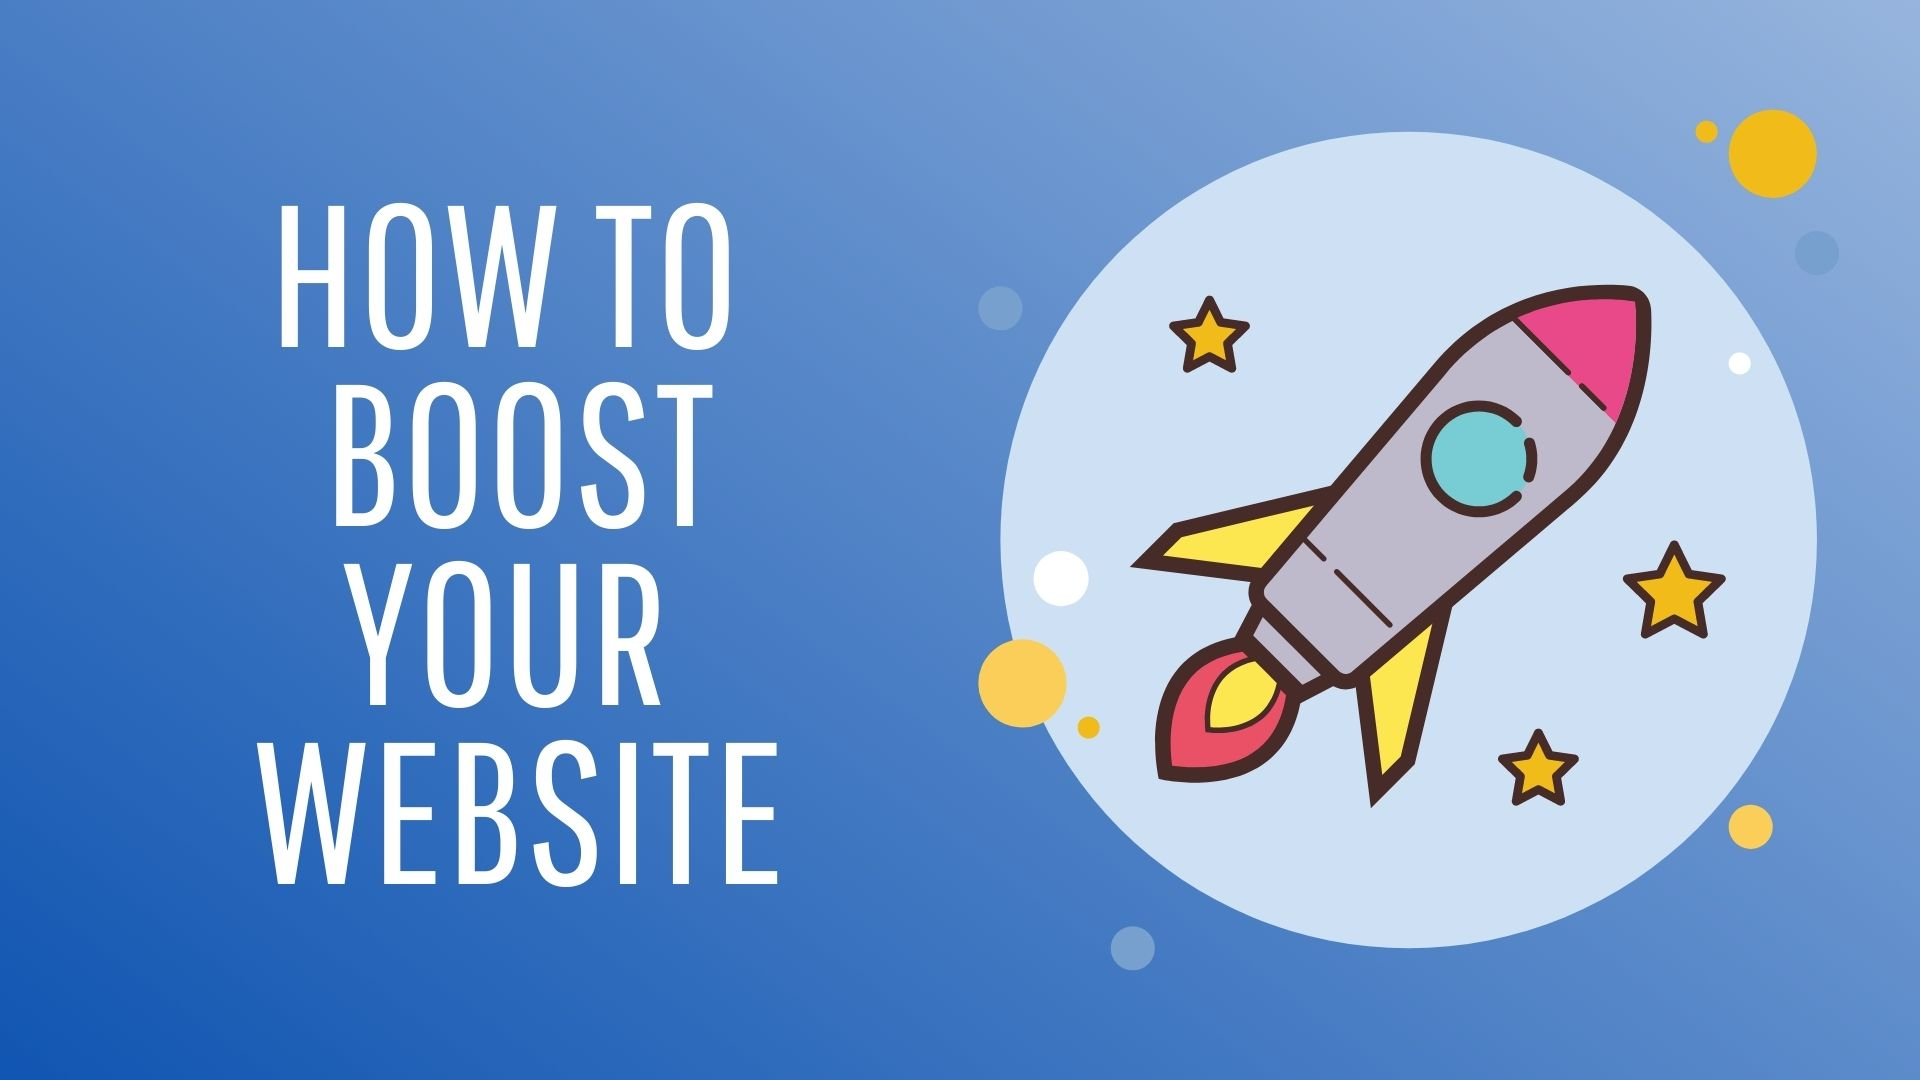 How to boost your website